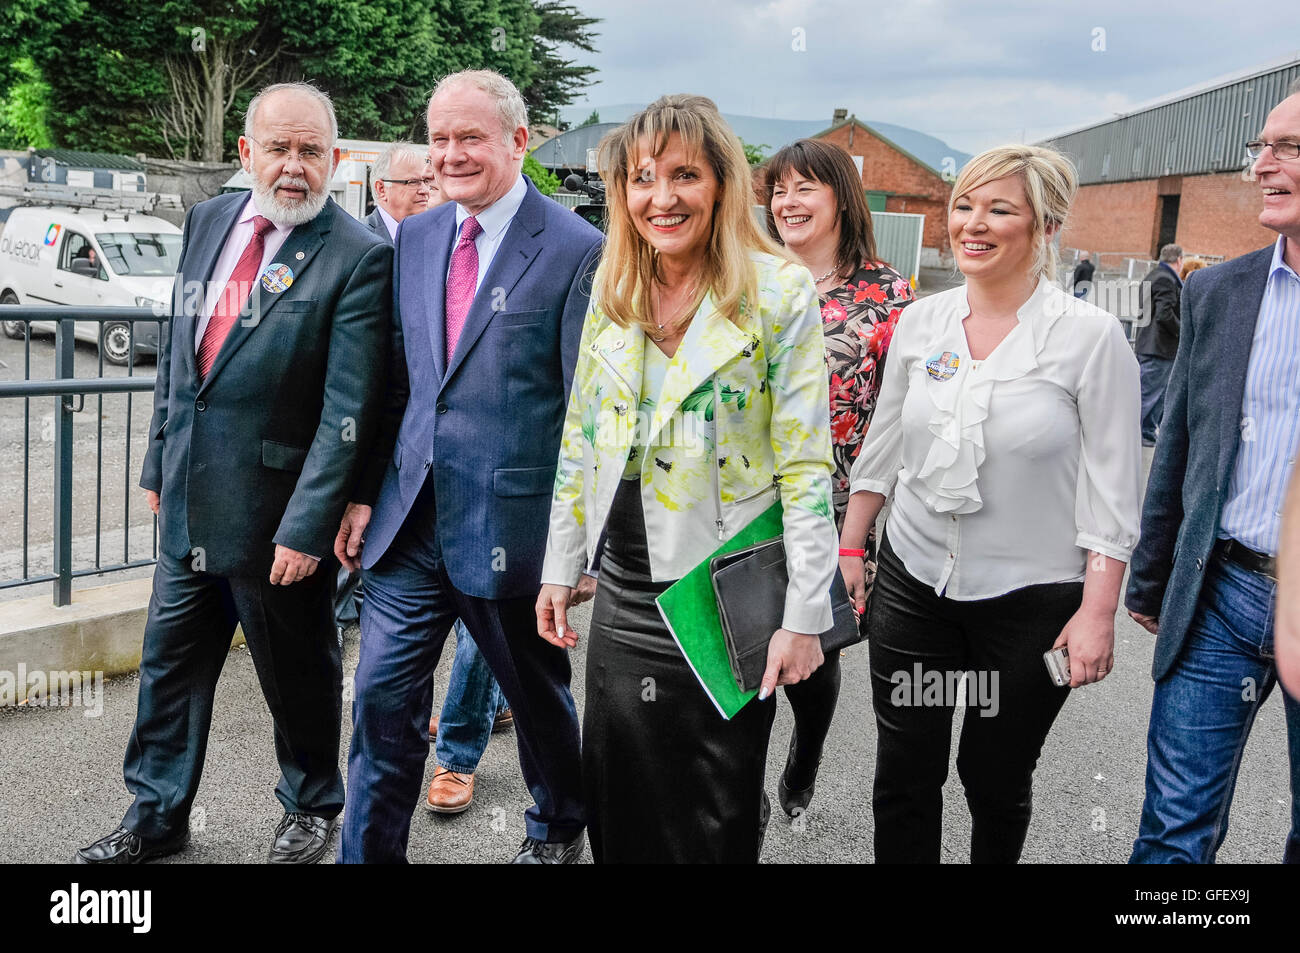 Belfast, Northern Ireland. 26 May 2014 - Sinn Fein candidate Martina Anderson arrives at EU counting station with - Stock Image